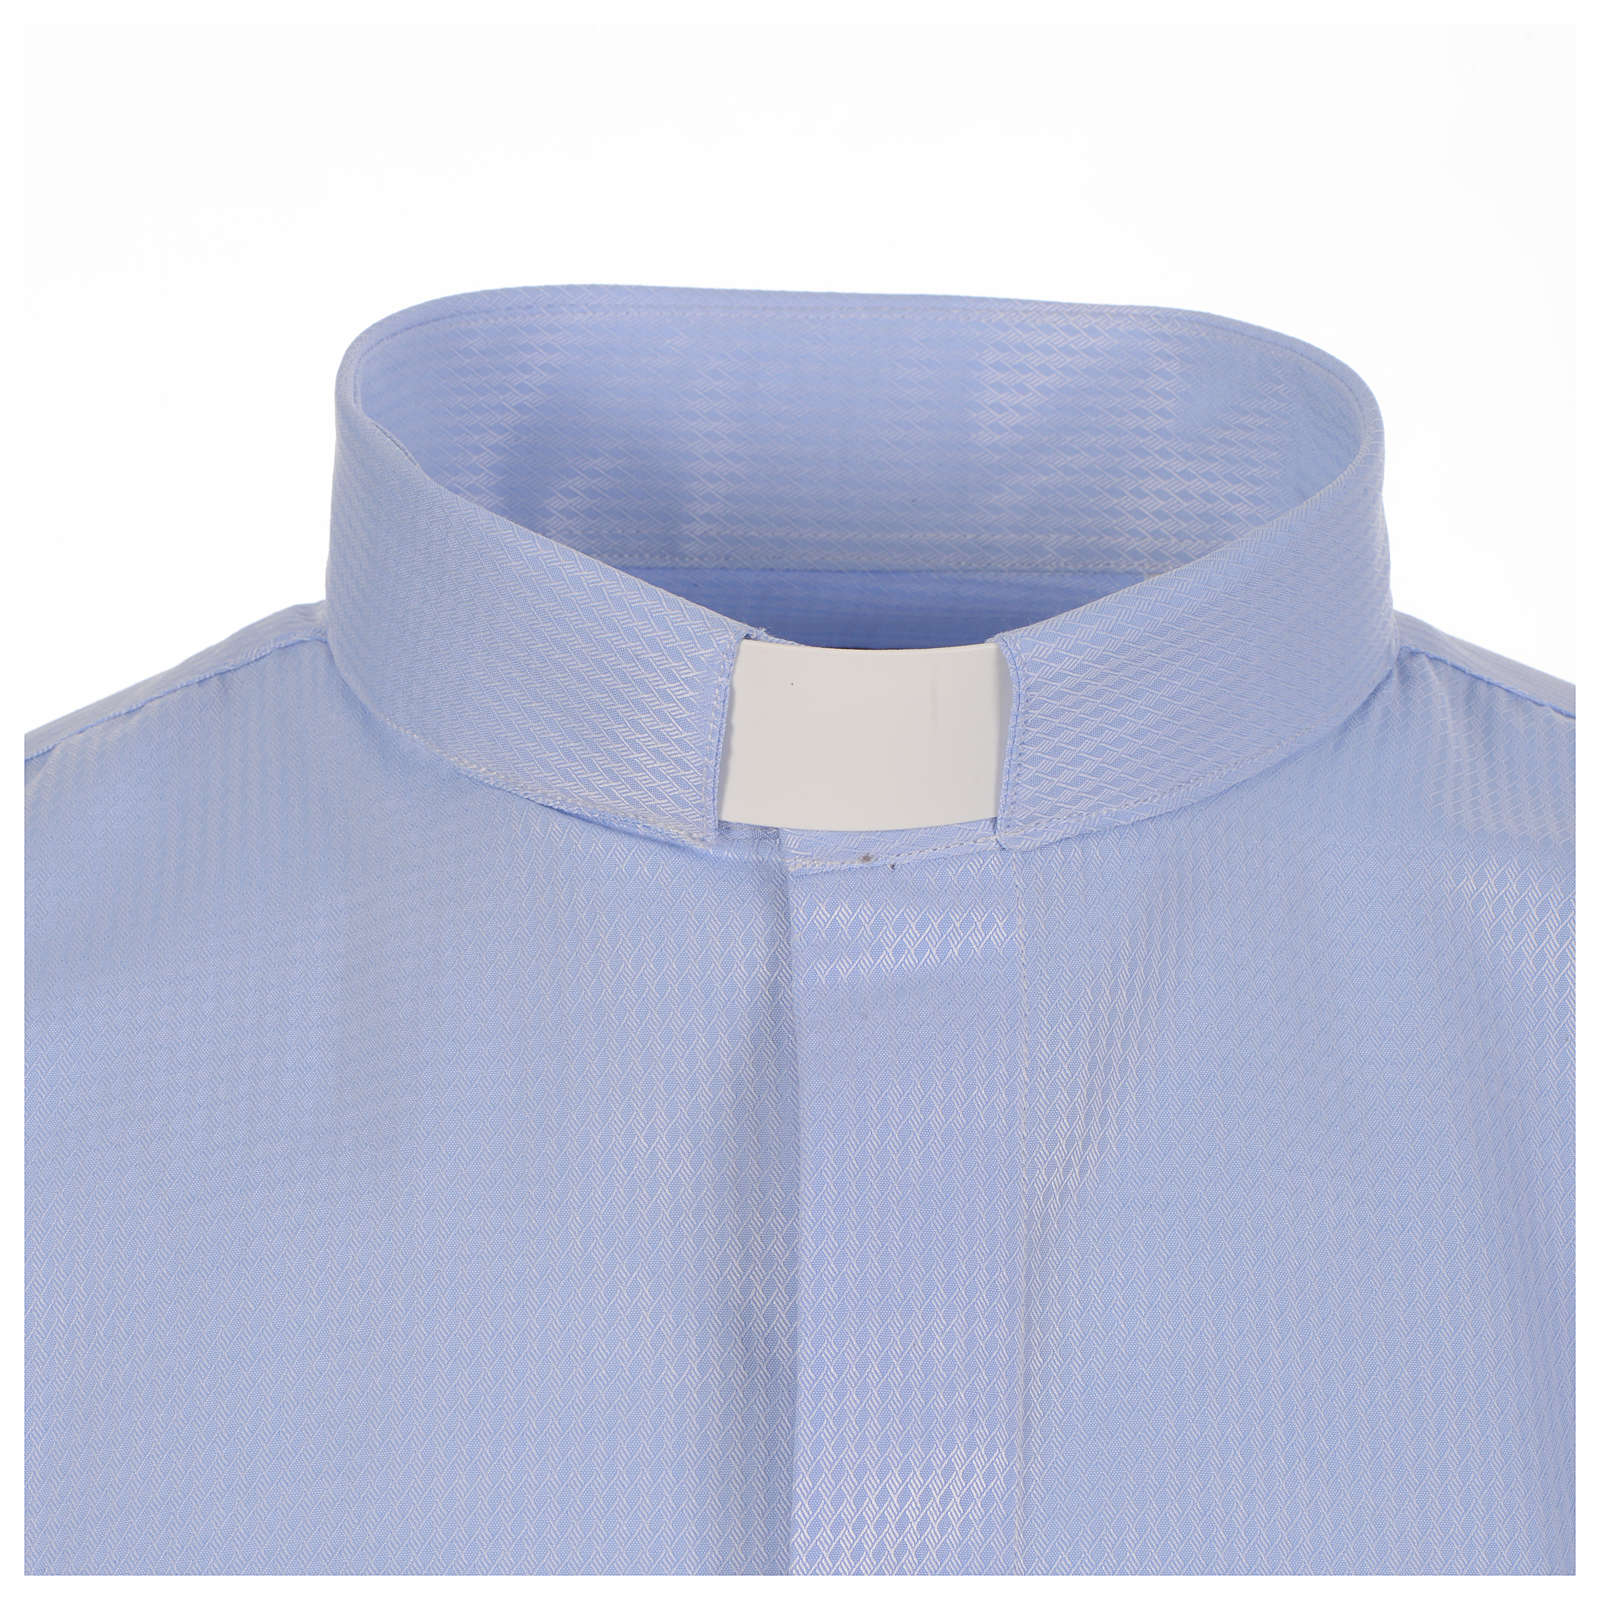 Clergy shirt sky blue jacquard long sleeve 4